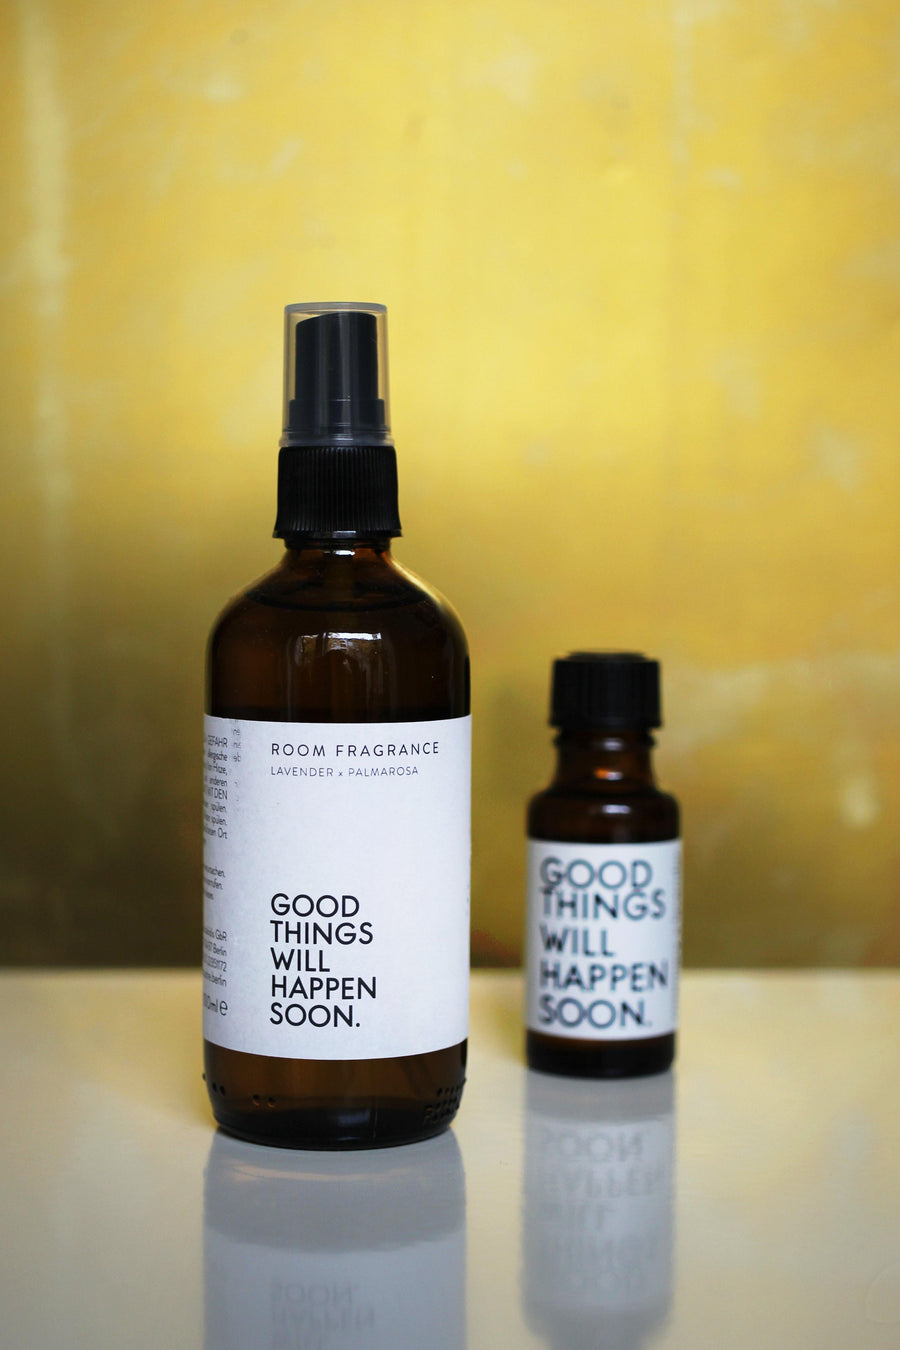 Good Things Will Happen Soon x Coudre Berlin Room Fragrance - The Good Store Berlin